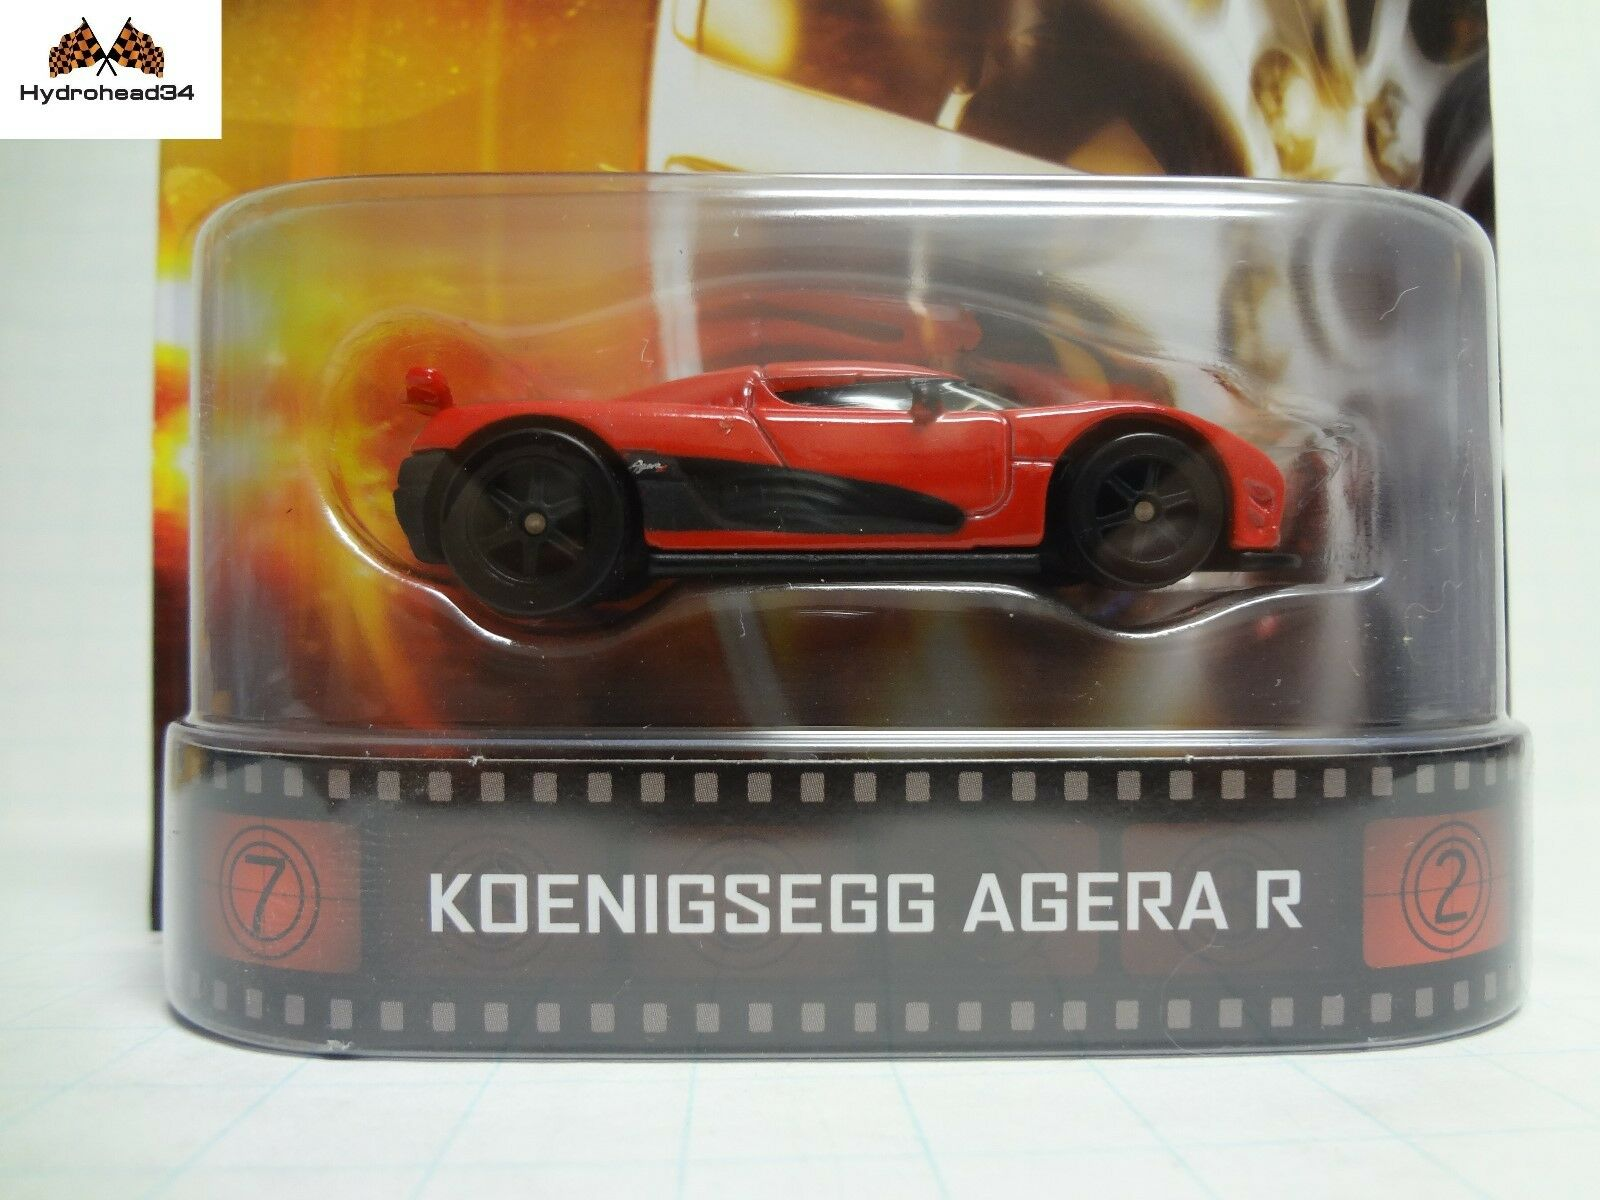 Hot wheels - koenigsegg agera r - need for speed 1 64